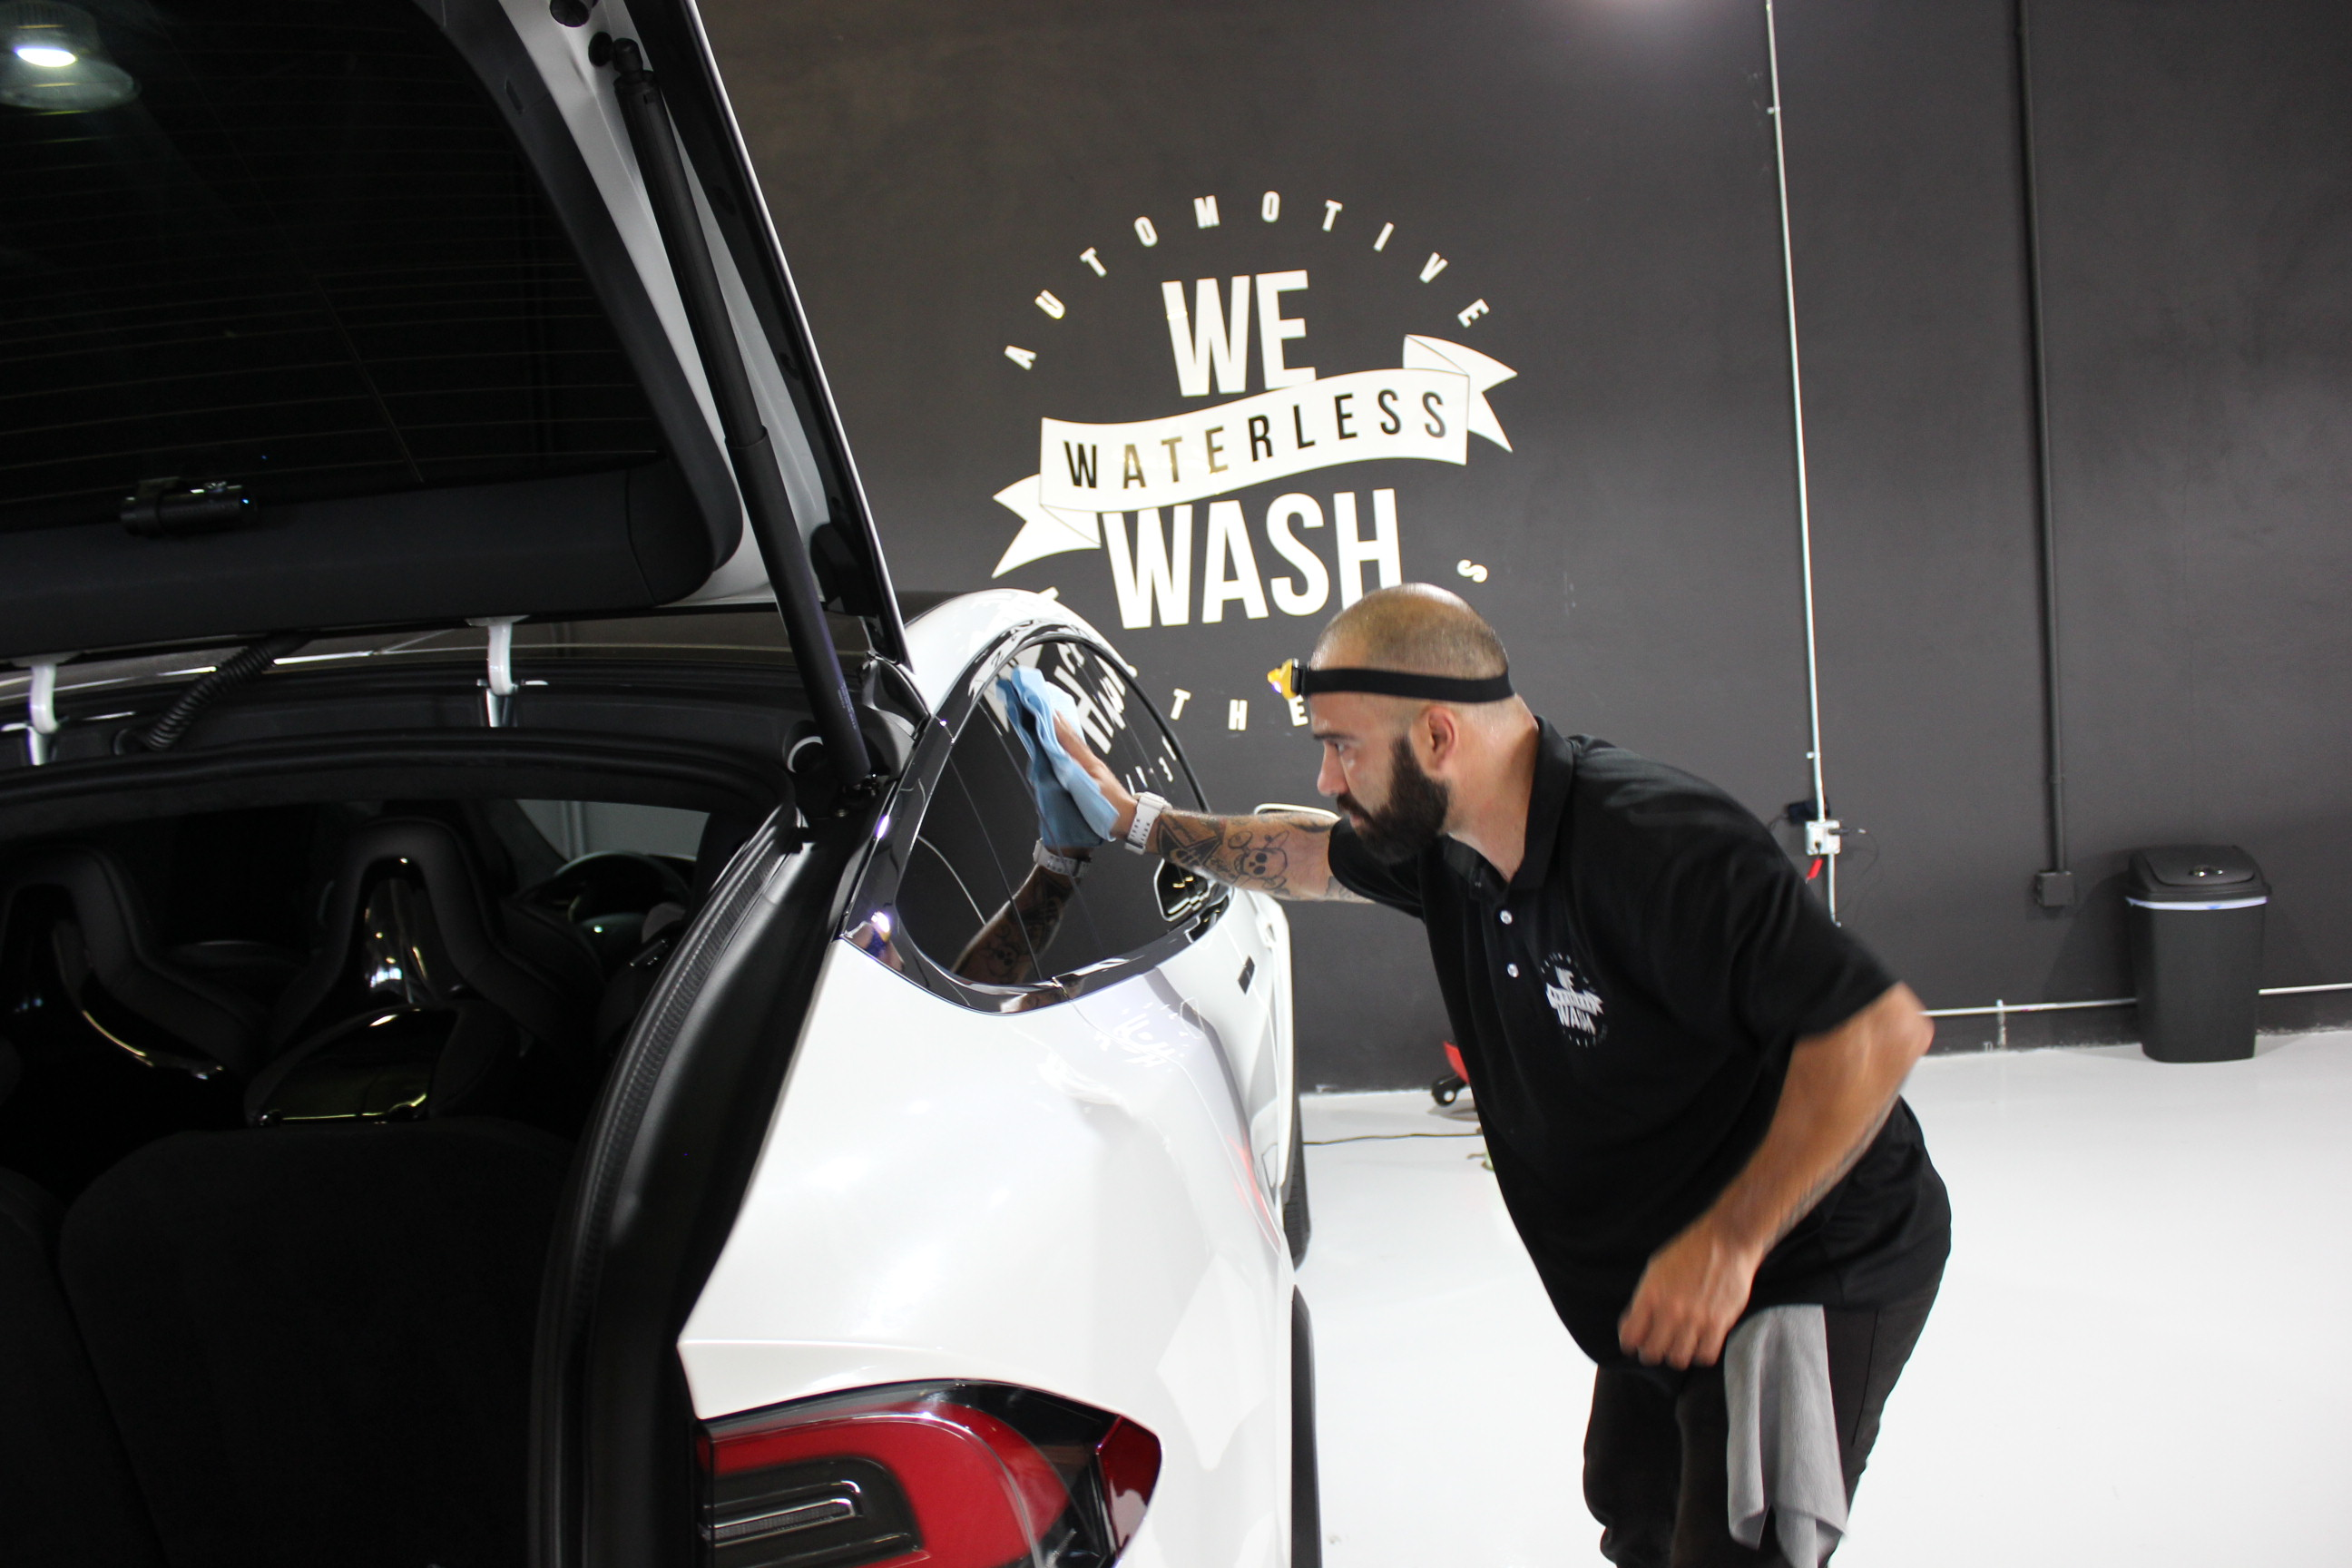 We Waterless Wash